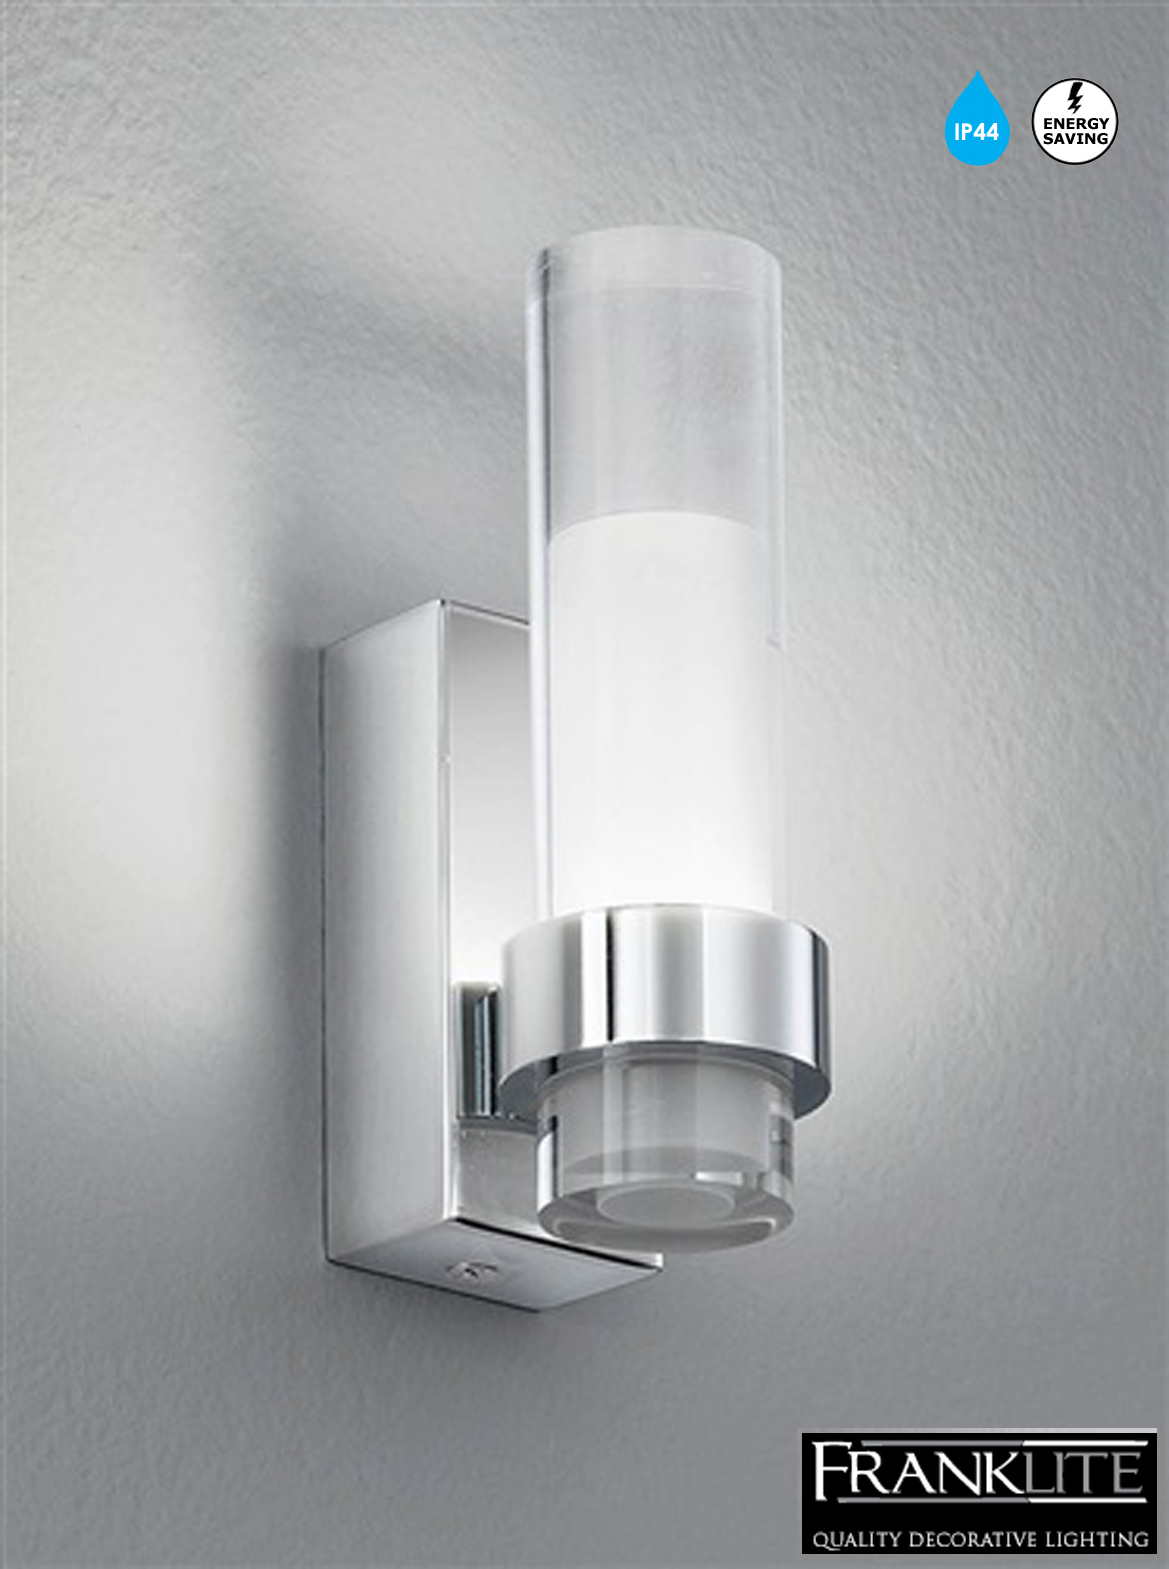 Franklite Low Energy Led Glass Chrome Ip44 Bathroom Single Wall Light Wb050 From Easy Lighting